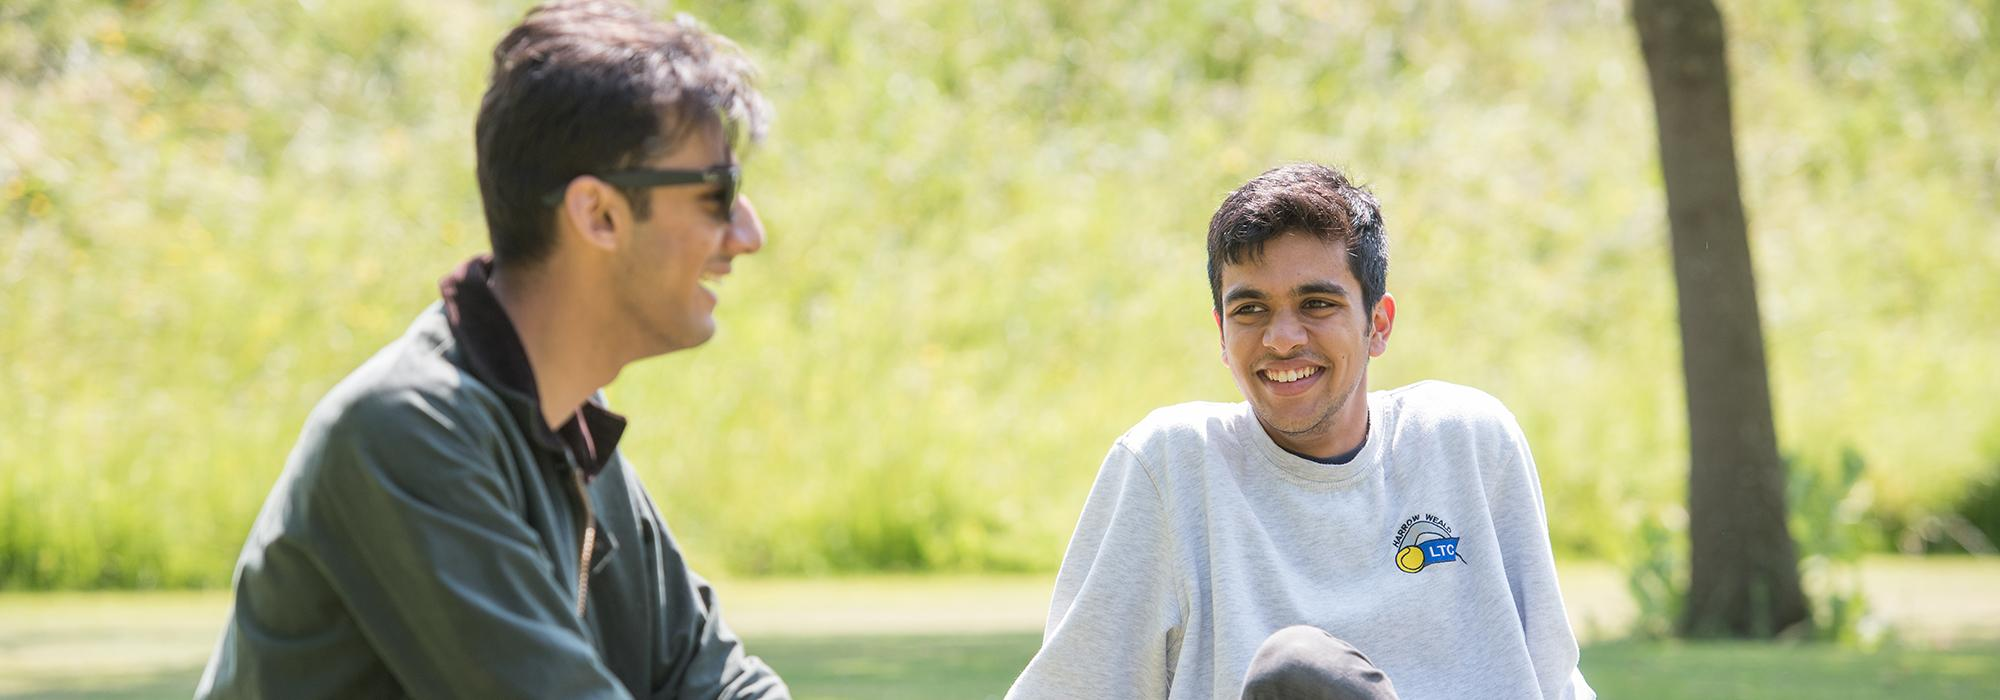 Jules Desai and Roshan Dodhia - Photo: © John Cairns - www.johncairns.co.uk